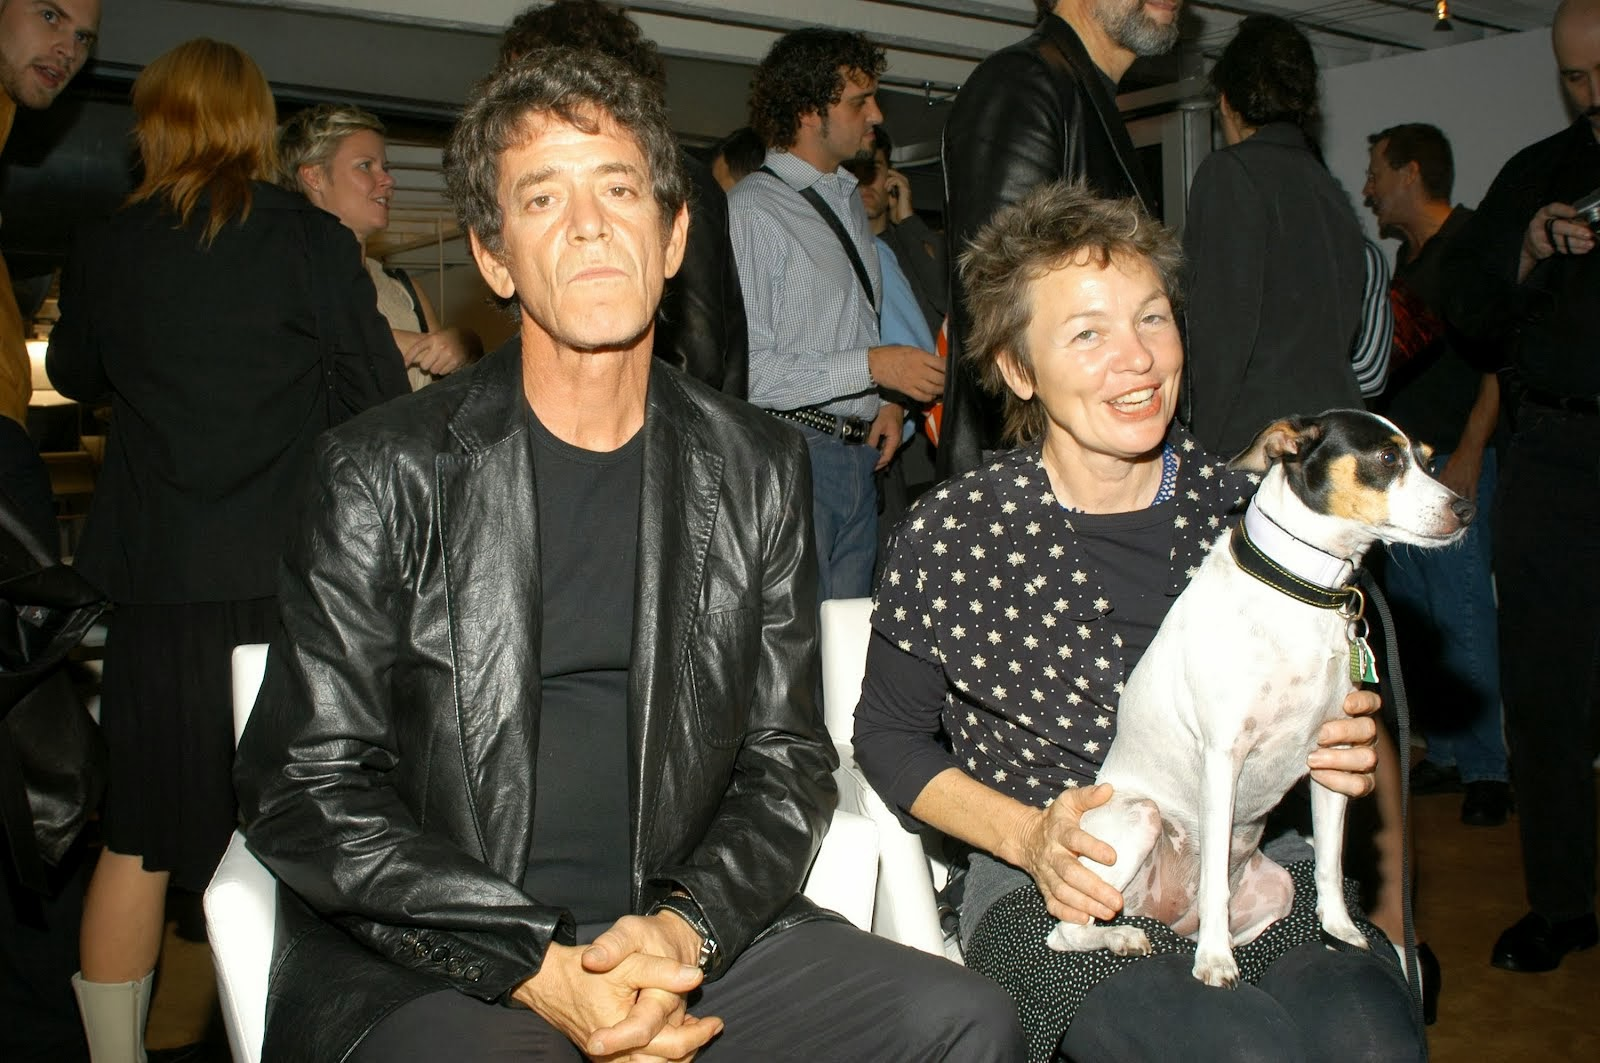 Artists' Books and Multiples: For Lou Reed